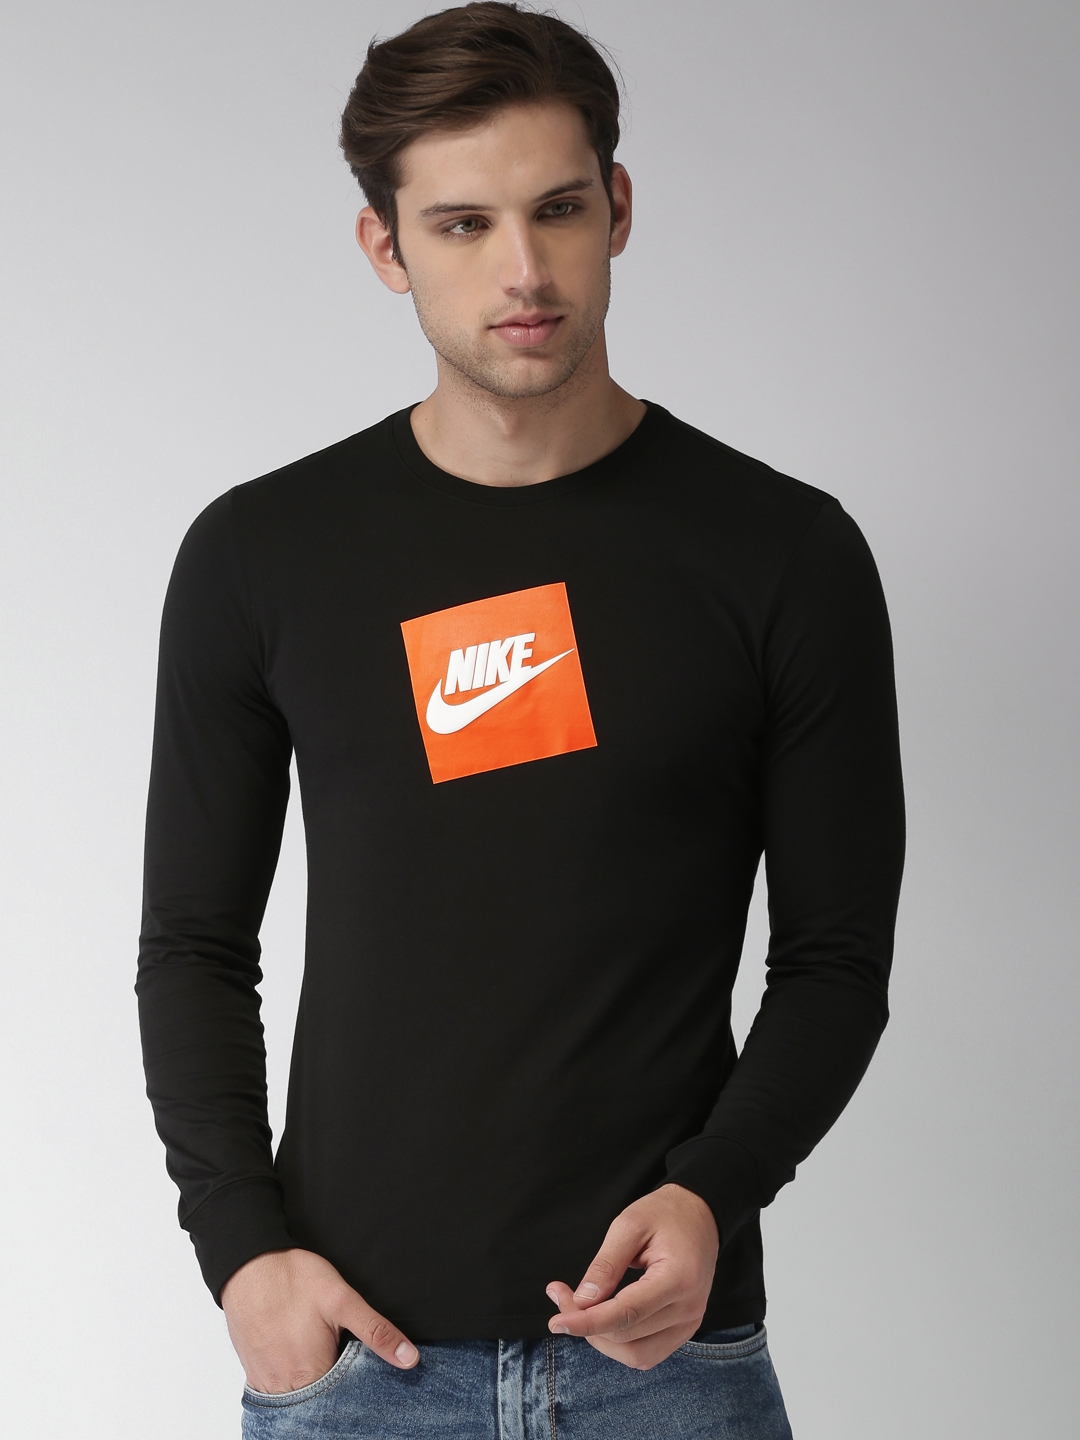 e33a8bcd9 Buy Nike Men Black Printed Round Neck FUTURA BOX HBR T Shirt ...